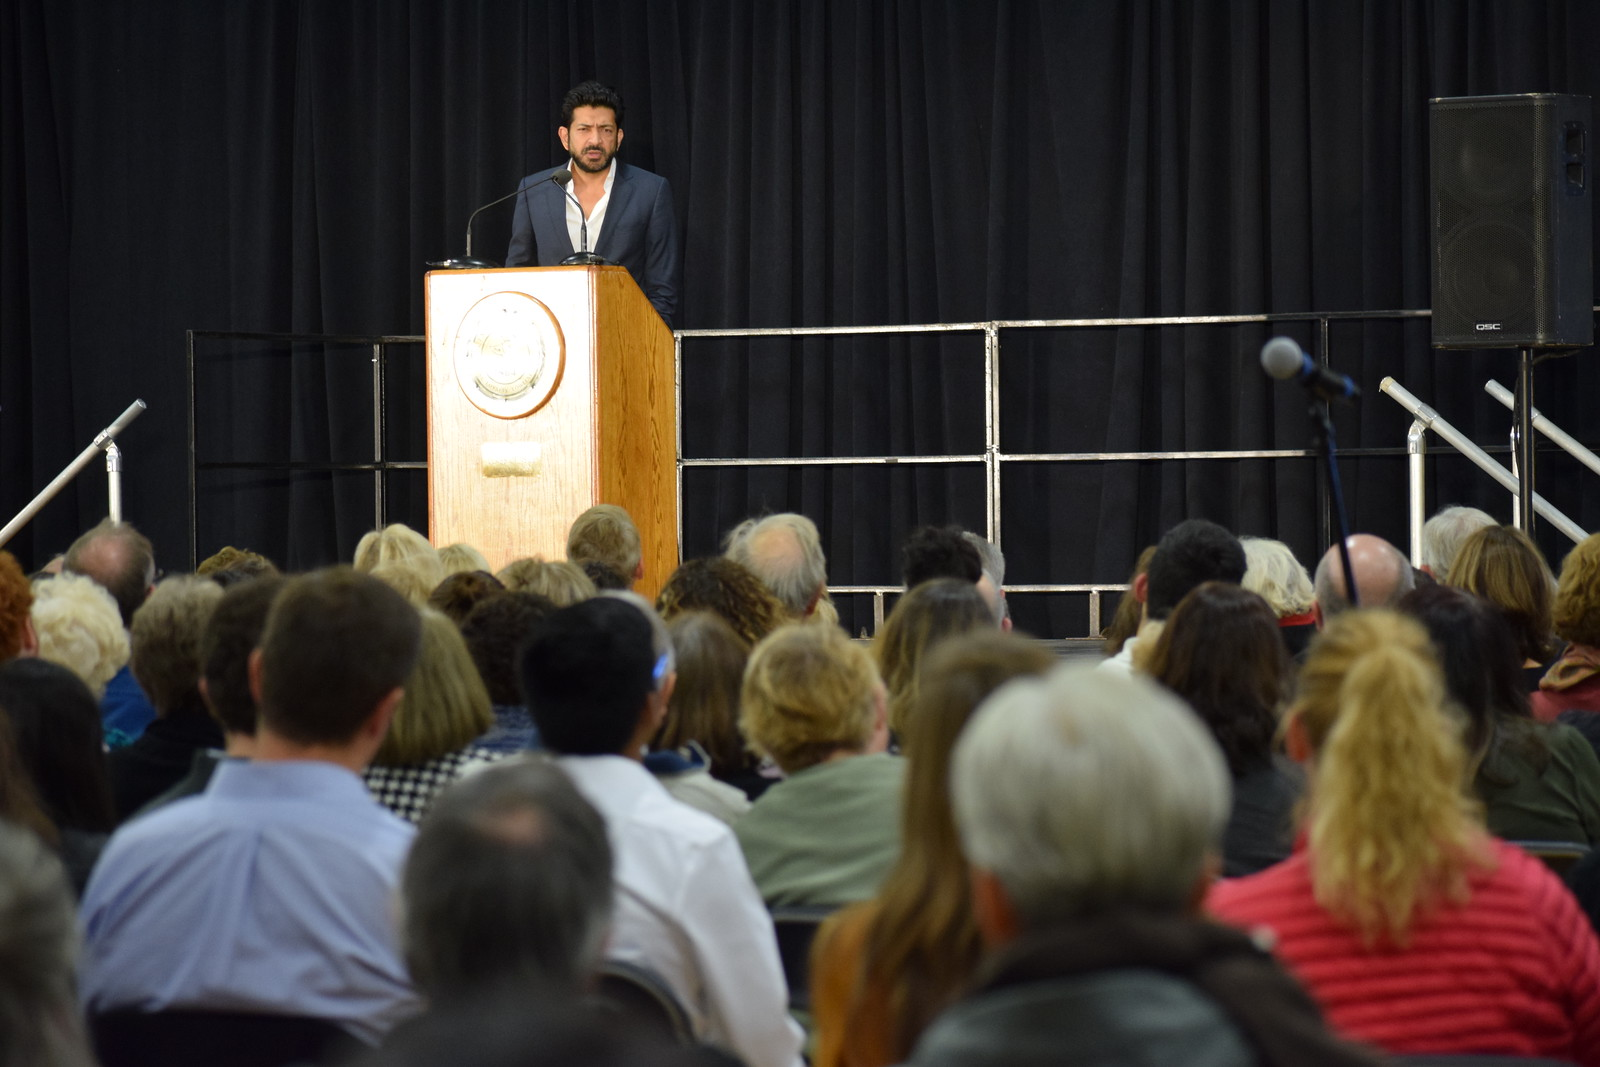 Expert Opinion: Author and Doctor Siddhartha Mukherjee, MD Spoke to a Crowd of 600+